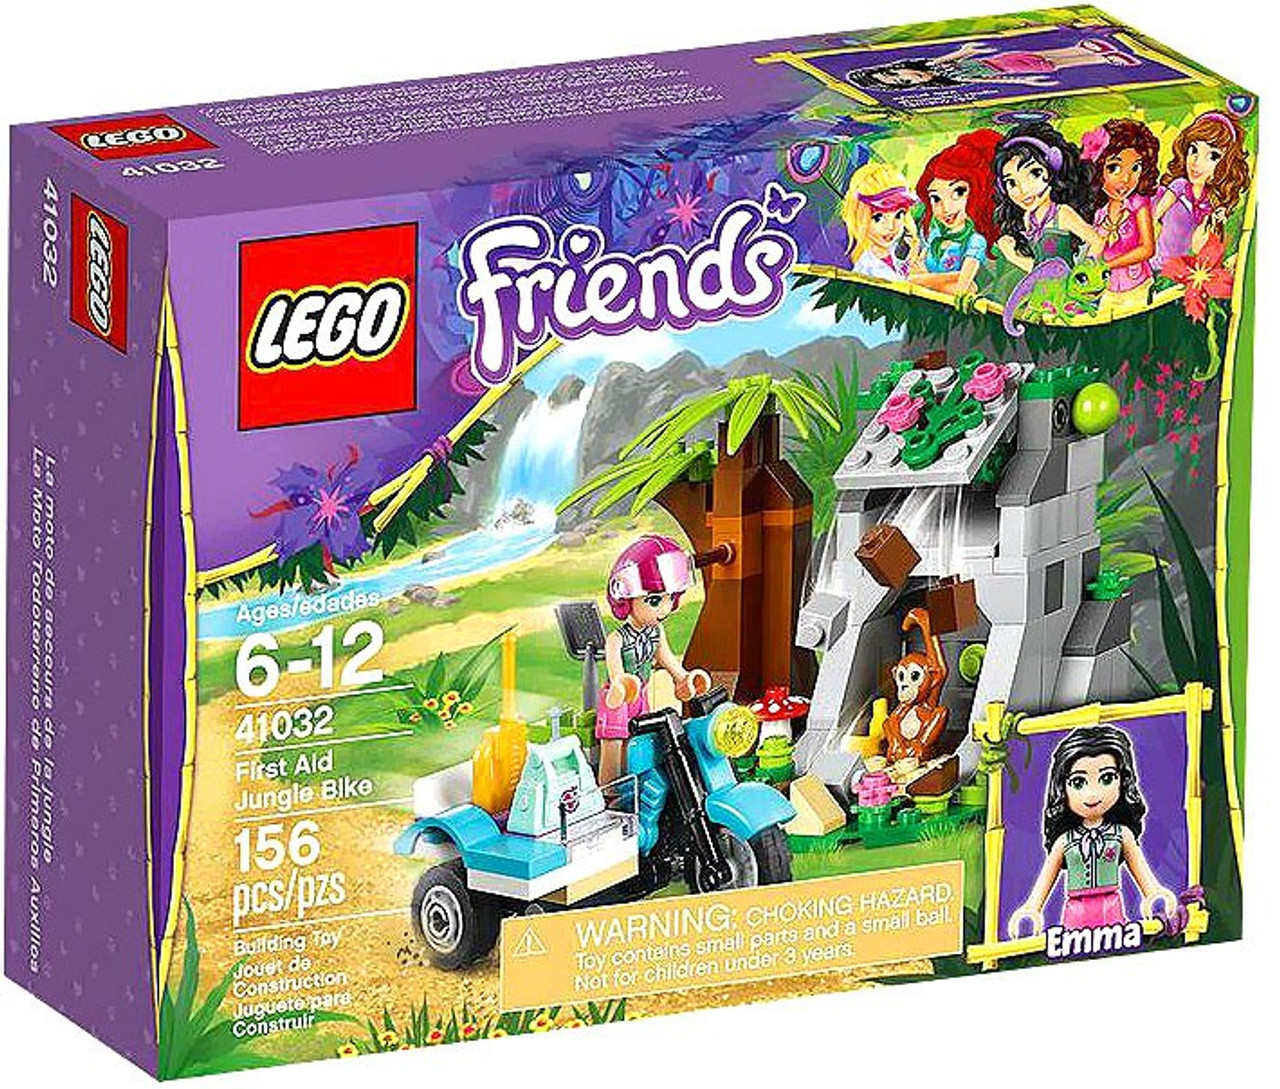 LEGO Friends First Aid Jungle Bike Set #41032